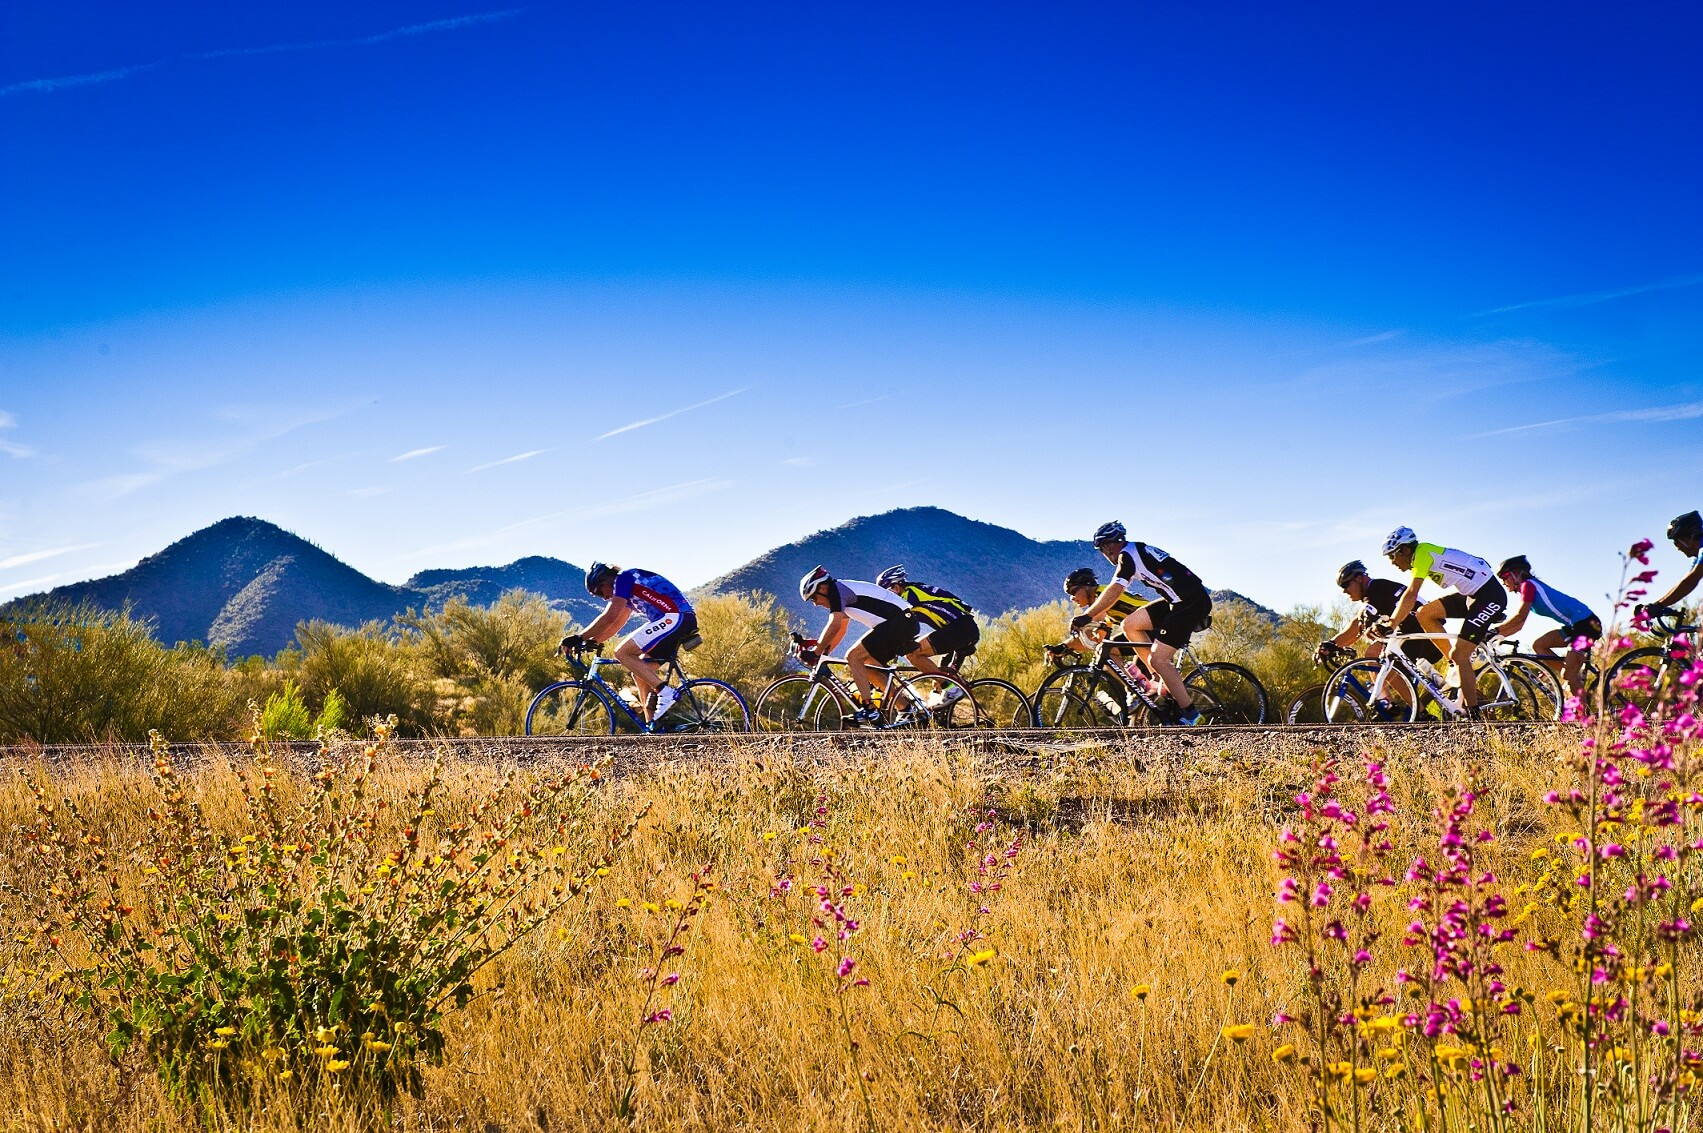 road cyclists on the tour de mesa in arizona